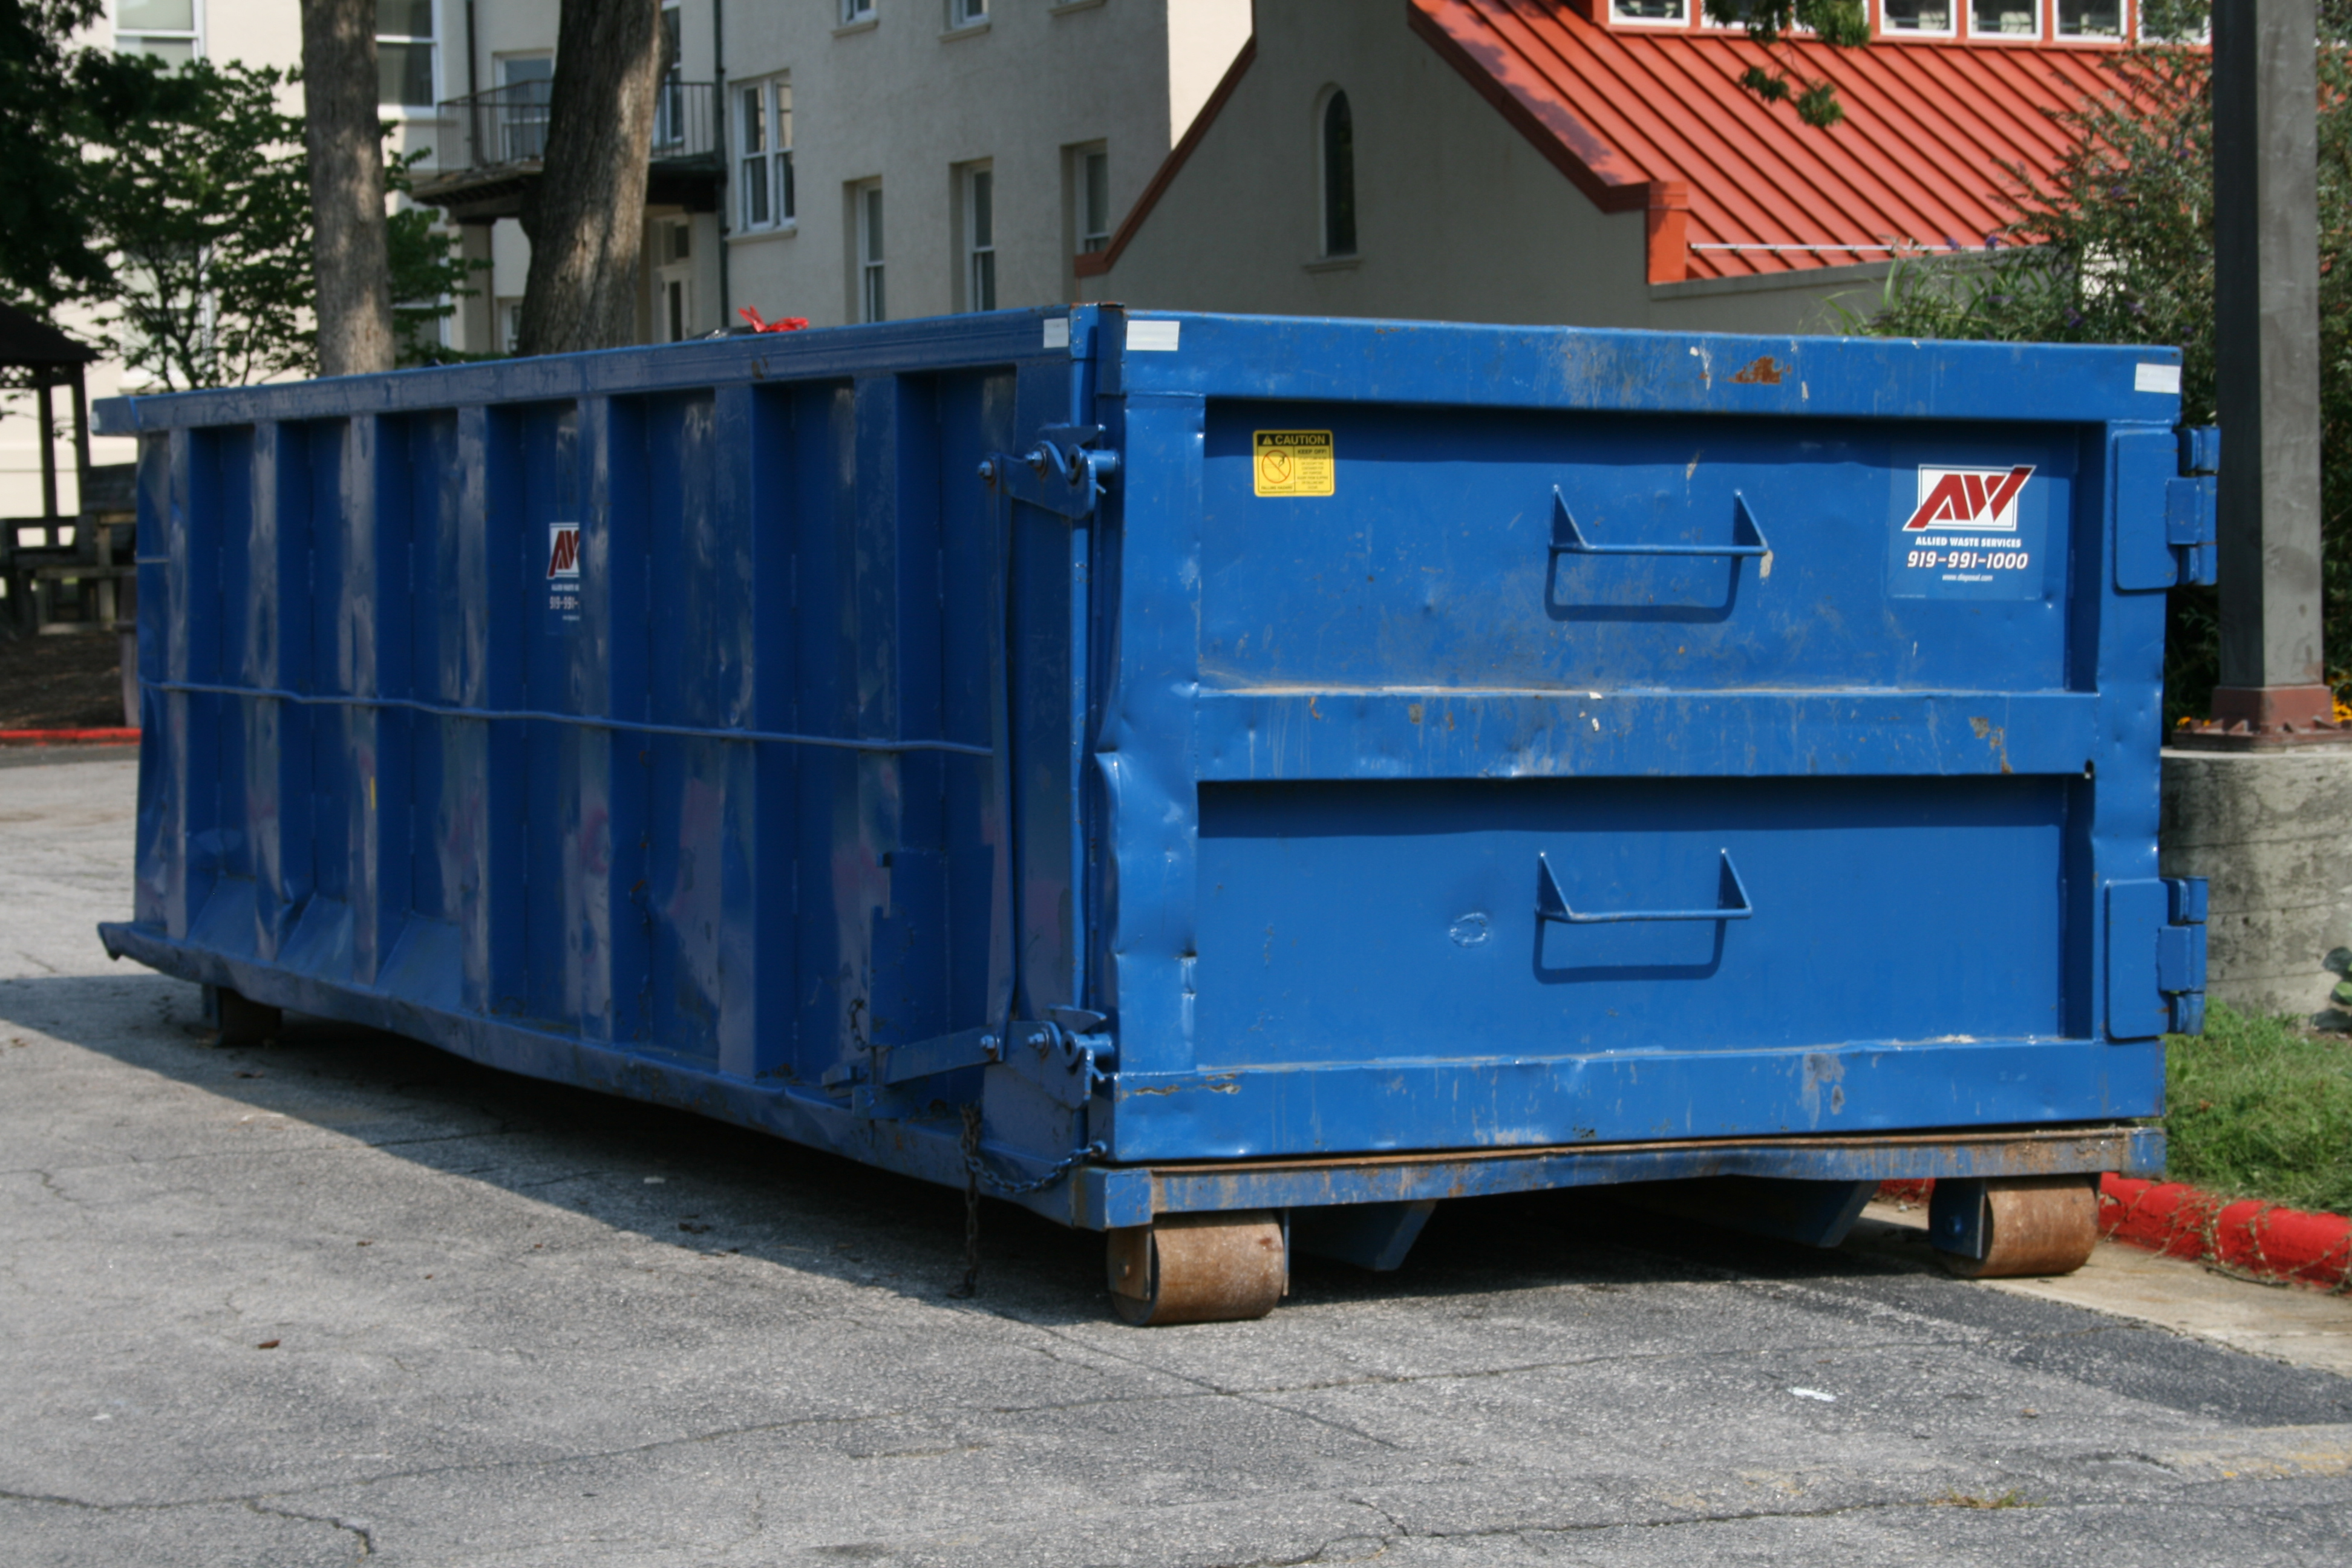 2008-07-12_Blue_AW_trash_container_at_NCSSM.jpg